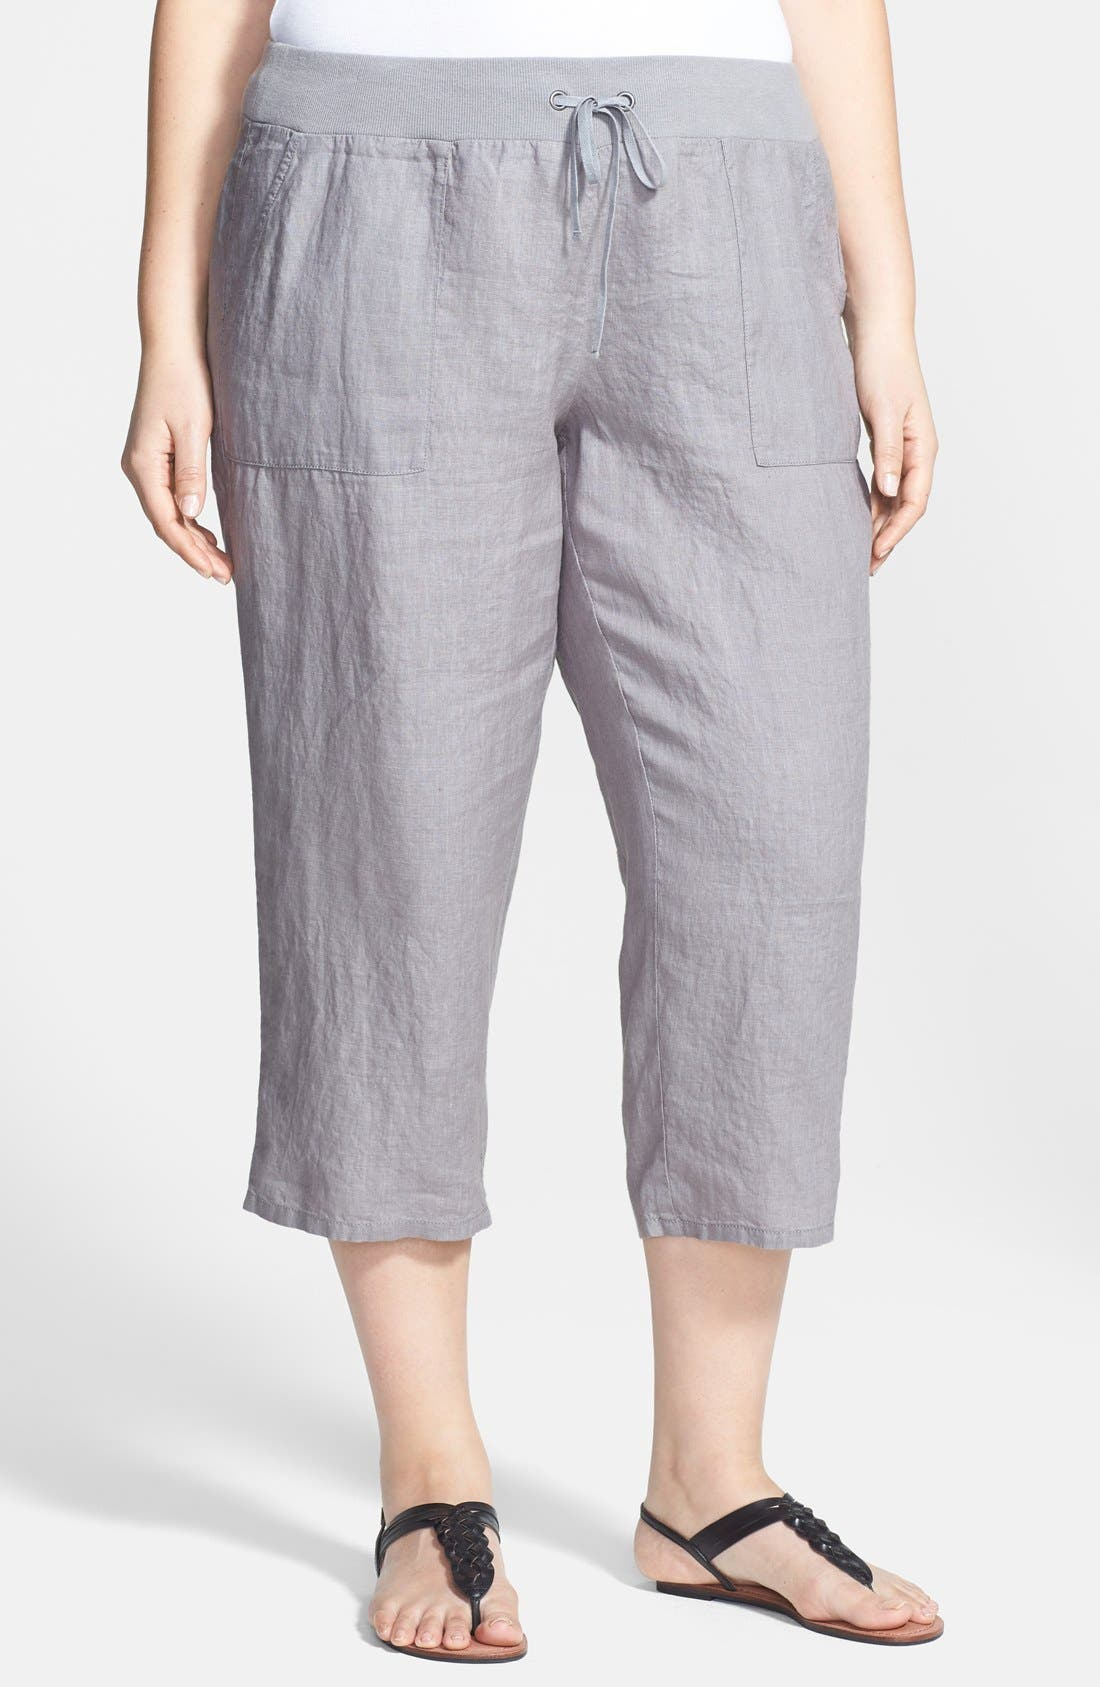 Alternate Image 1 Selected - Eileen Fisher Organic Linen Capri Pants (Plus Size)